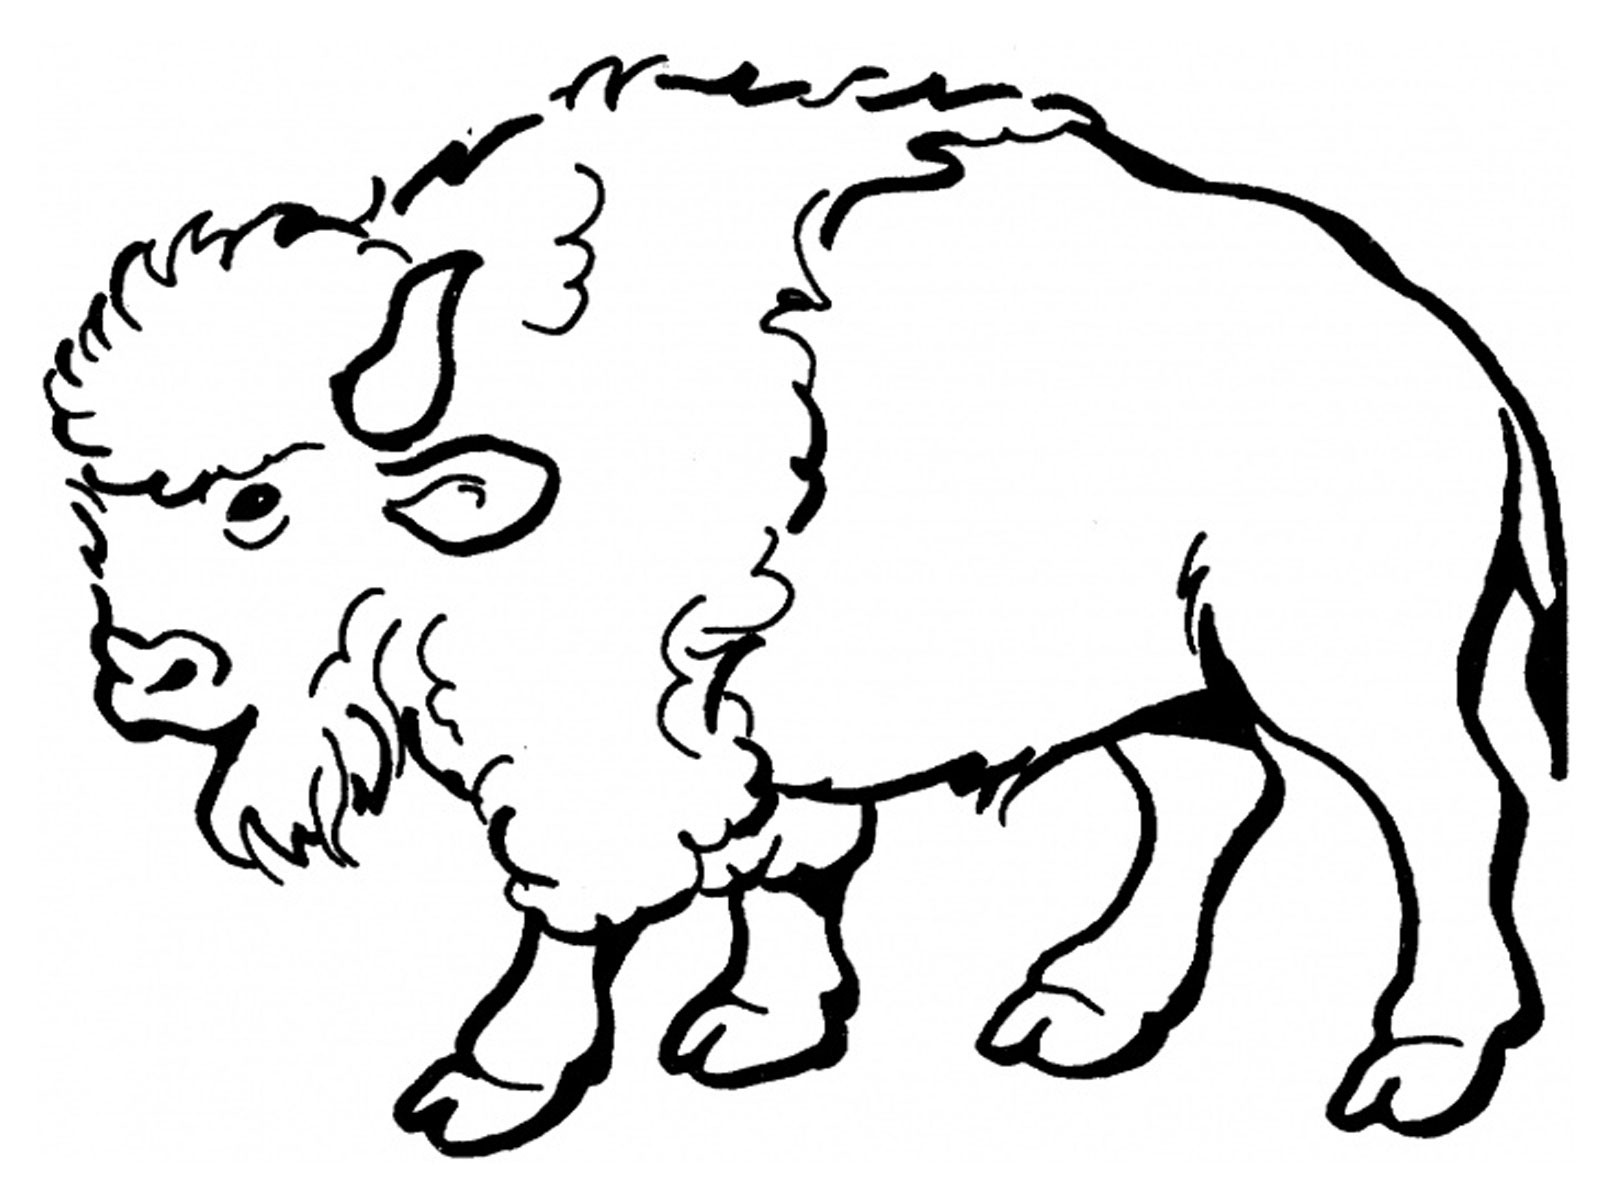 Bison Coloring Pages For Kids Realistic Coloring Pages Bison Coloring Page